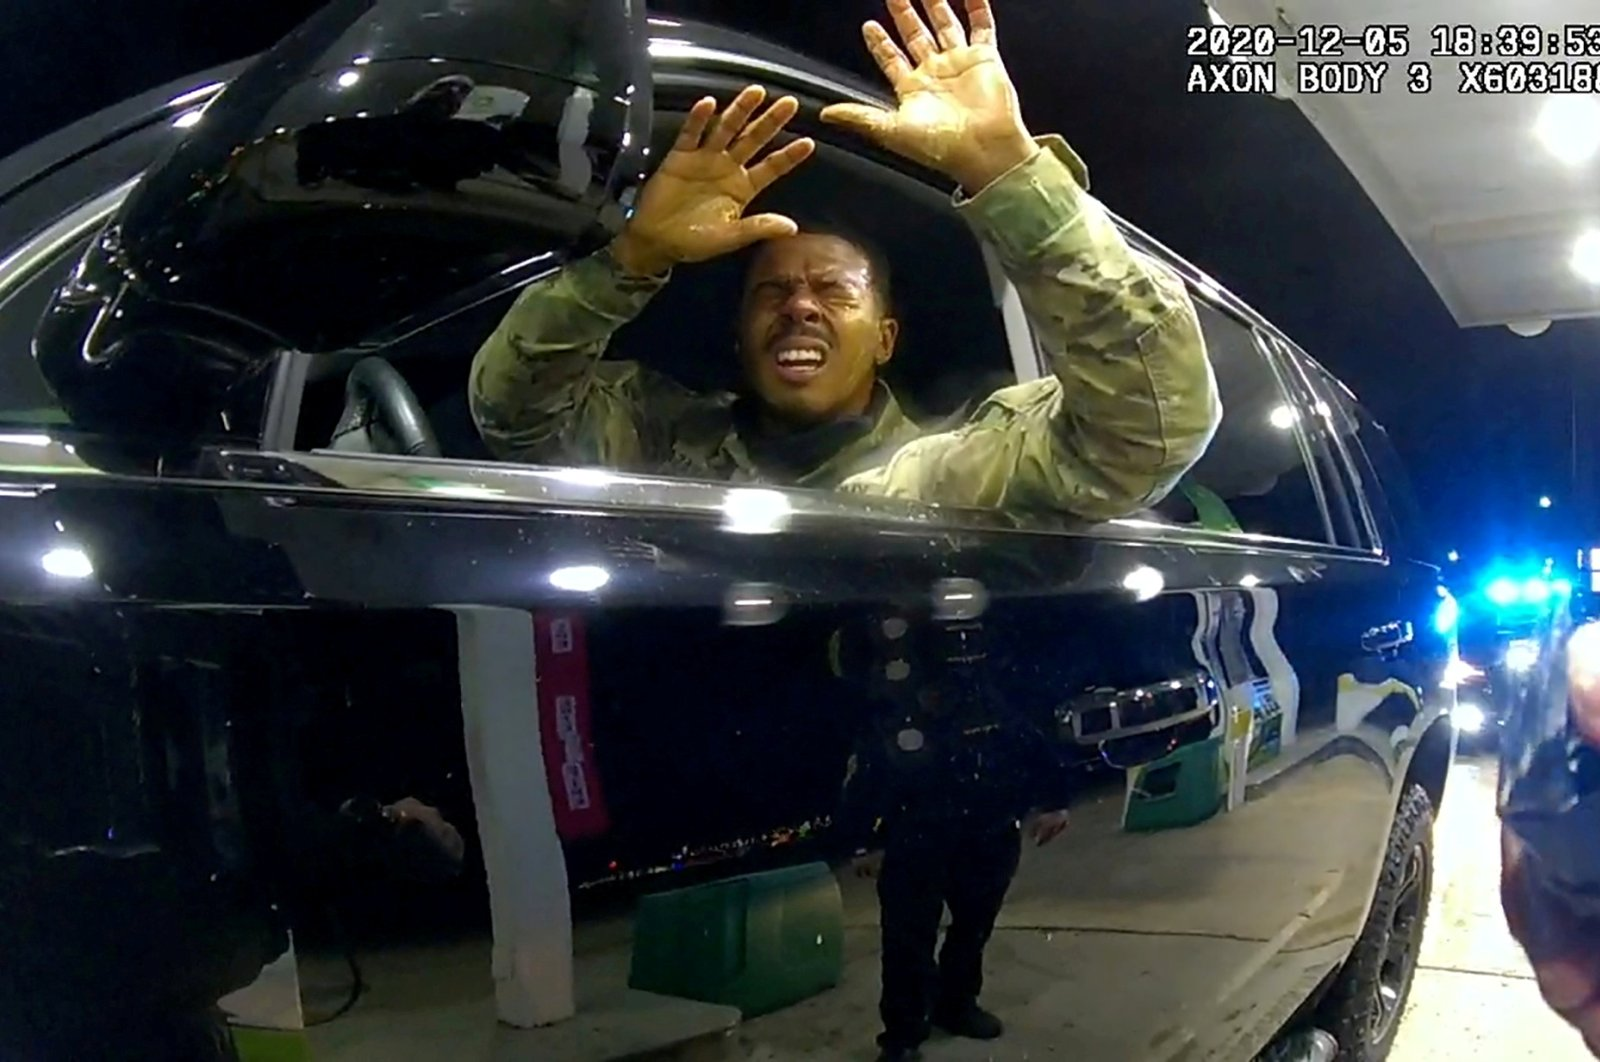 U.S. Army 2nd Lieutenant Caron Nazario reacts as he holds up his hands after being sprayed with a chemical agent by Windsor police officer Joe Gutierrez during a violent traffic stop at a gas station in a still image from Gutierrez's body camera taken in Windsor, Virginia, the U.S., Dec. 5, 2020. (REUTERS Photo)